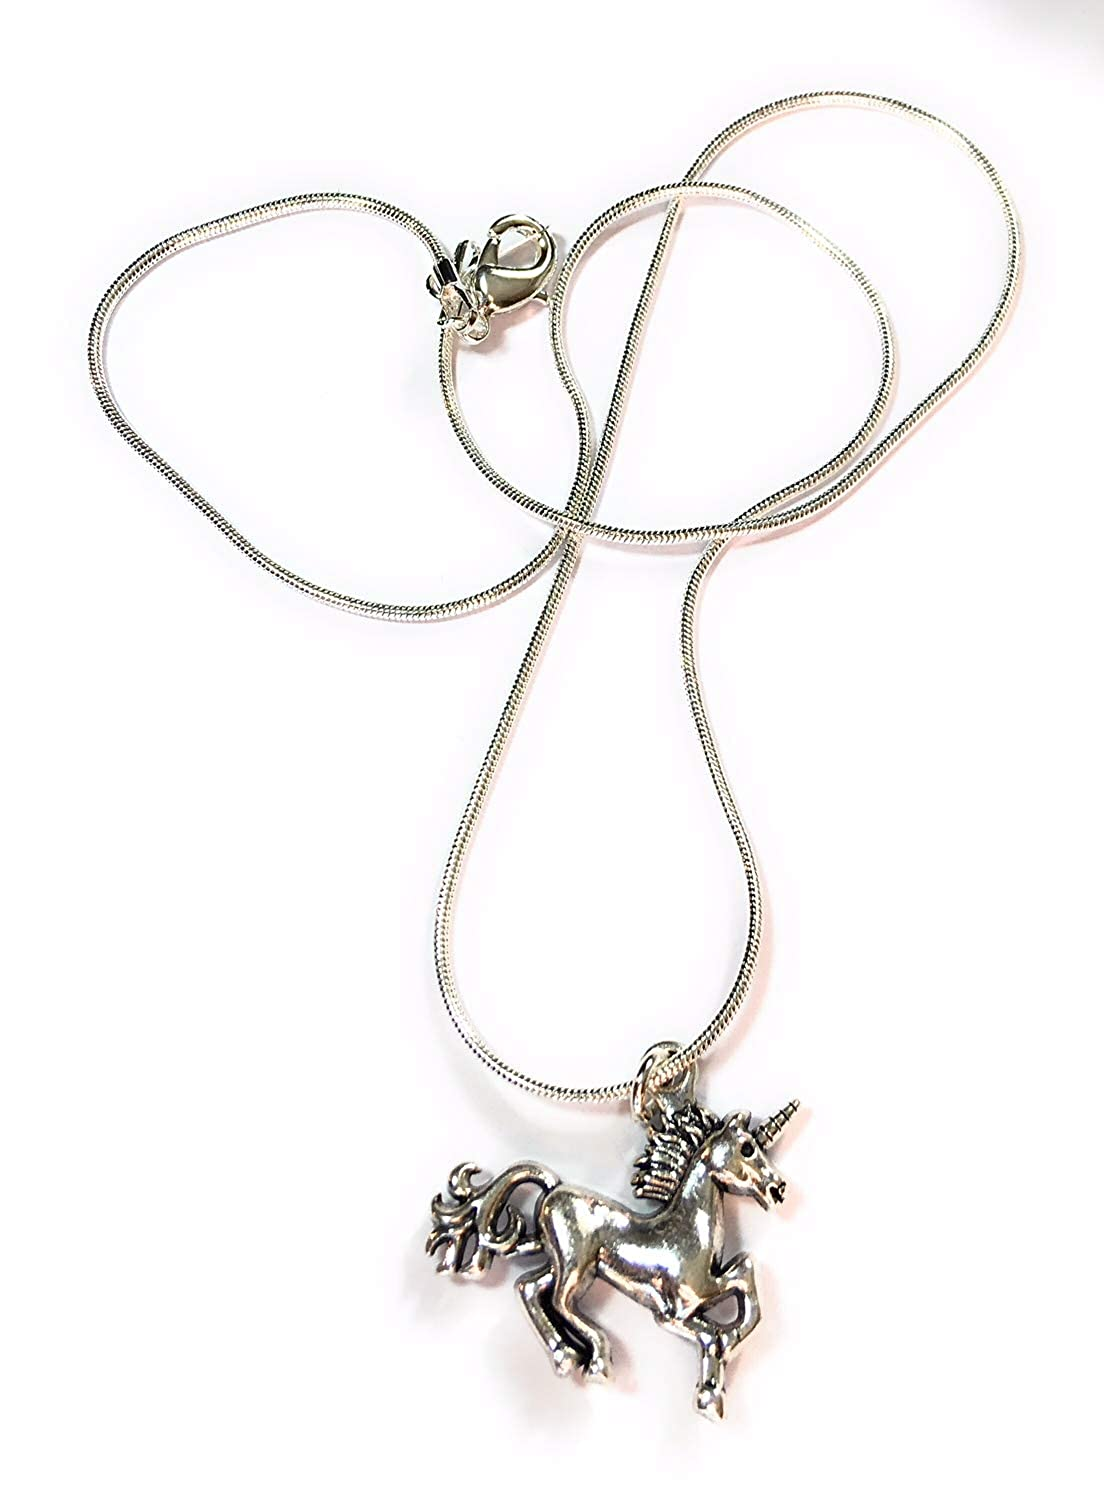 Sperrins Elephant Necklace Chain Necklace Pendant Necklace Earrings Ring Chain Necklace Jewelry for Women Girls Gifts